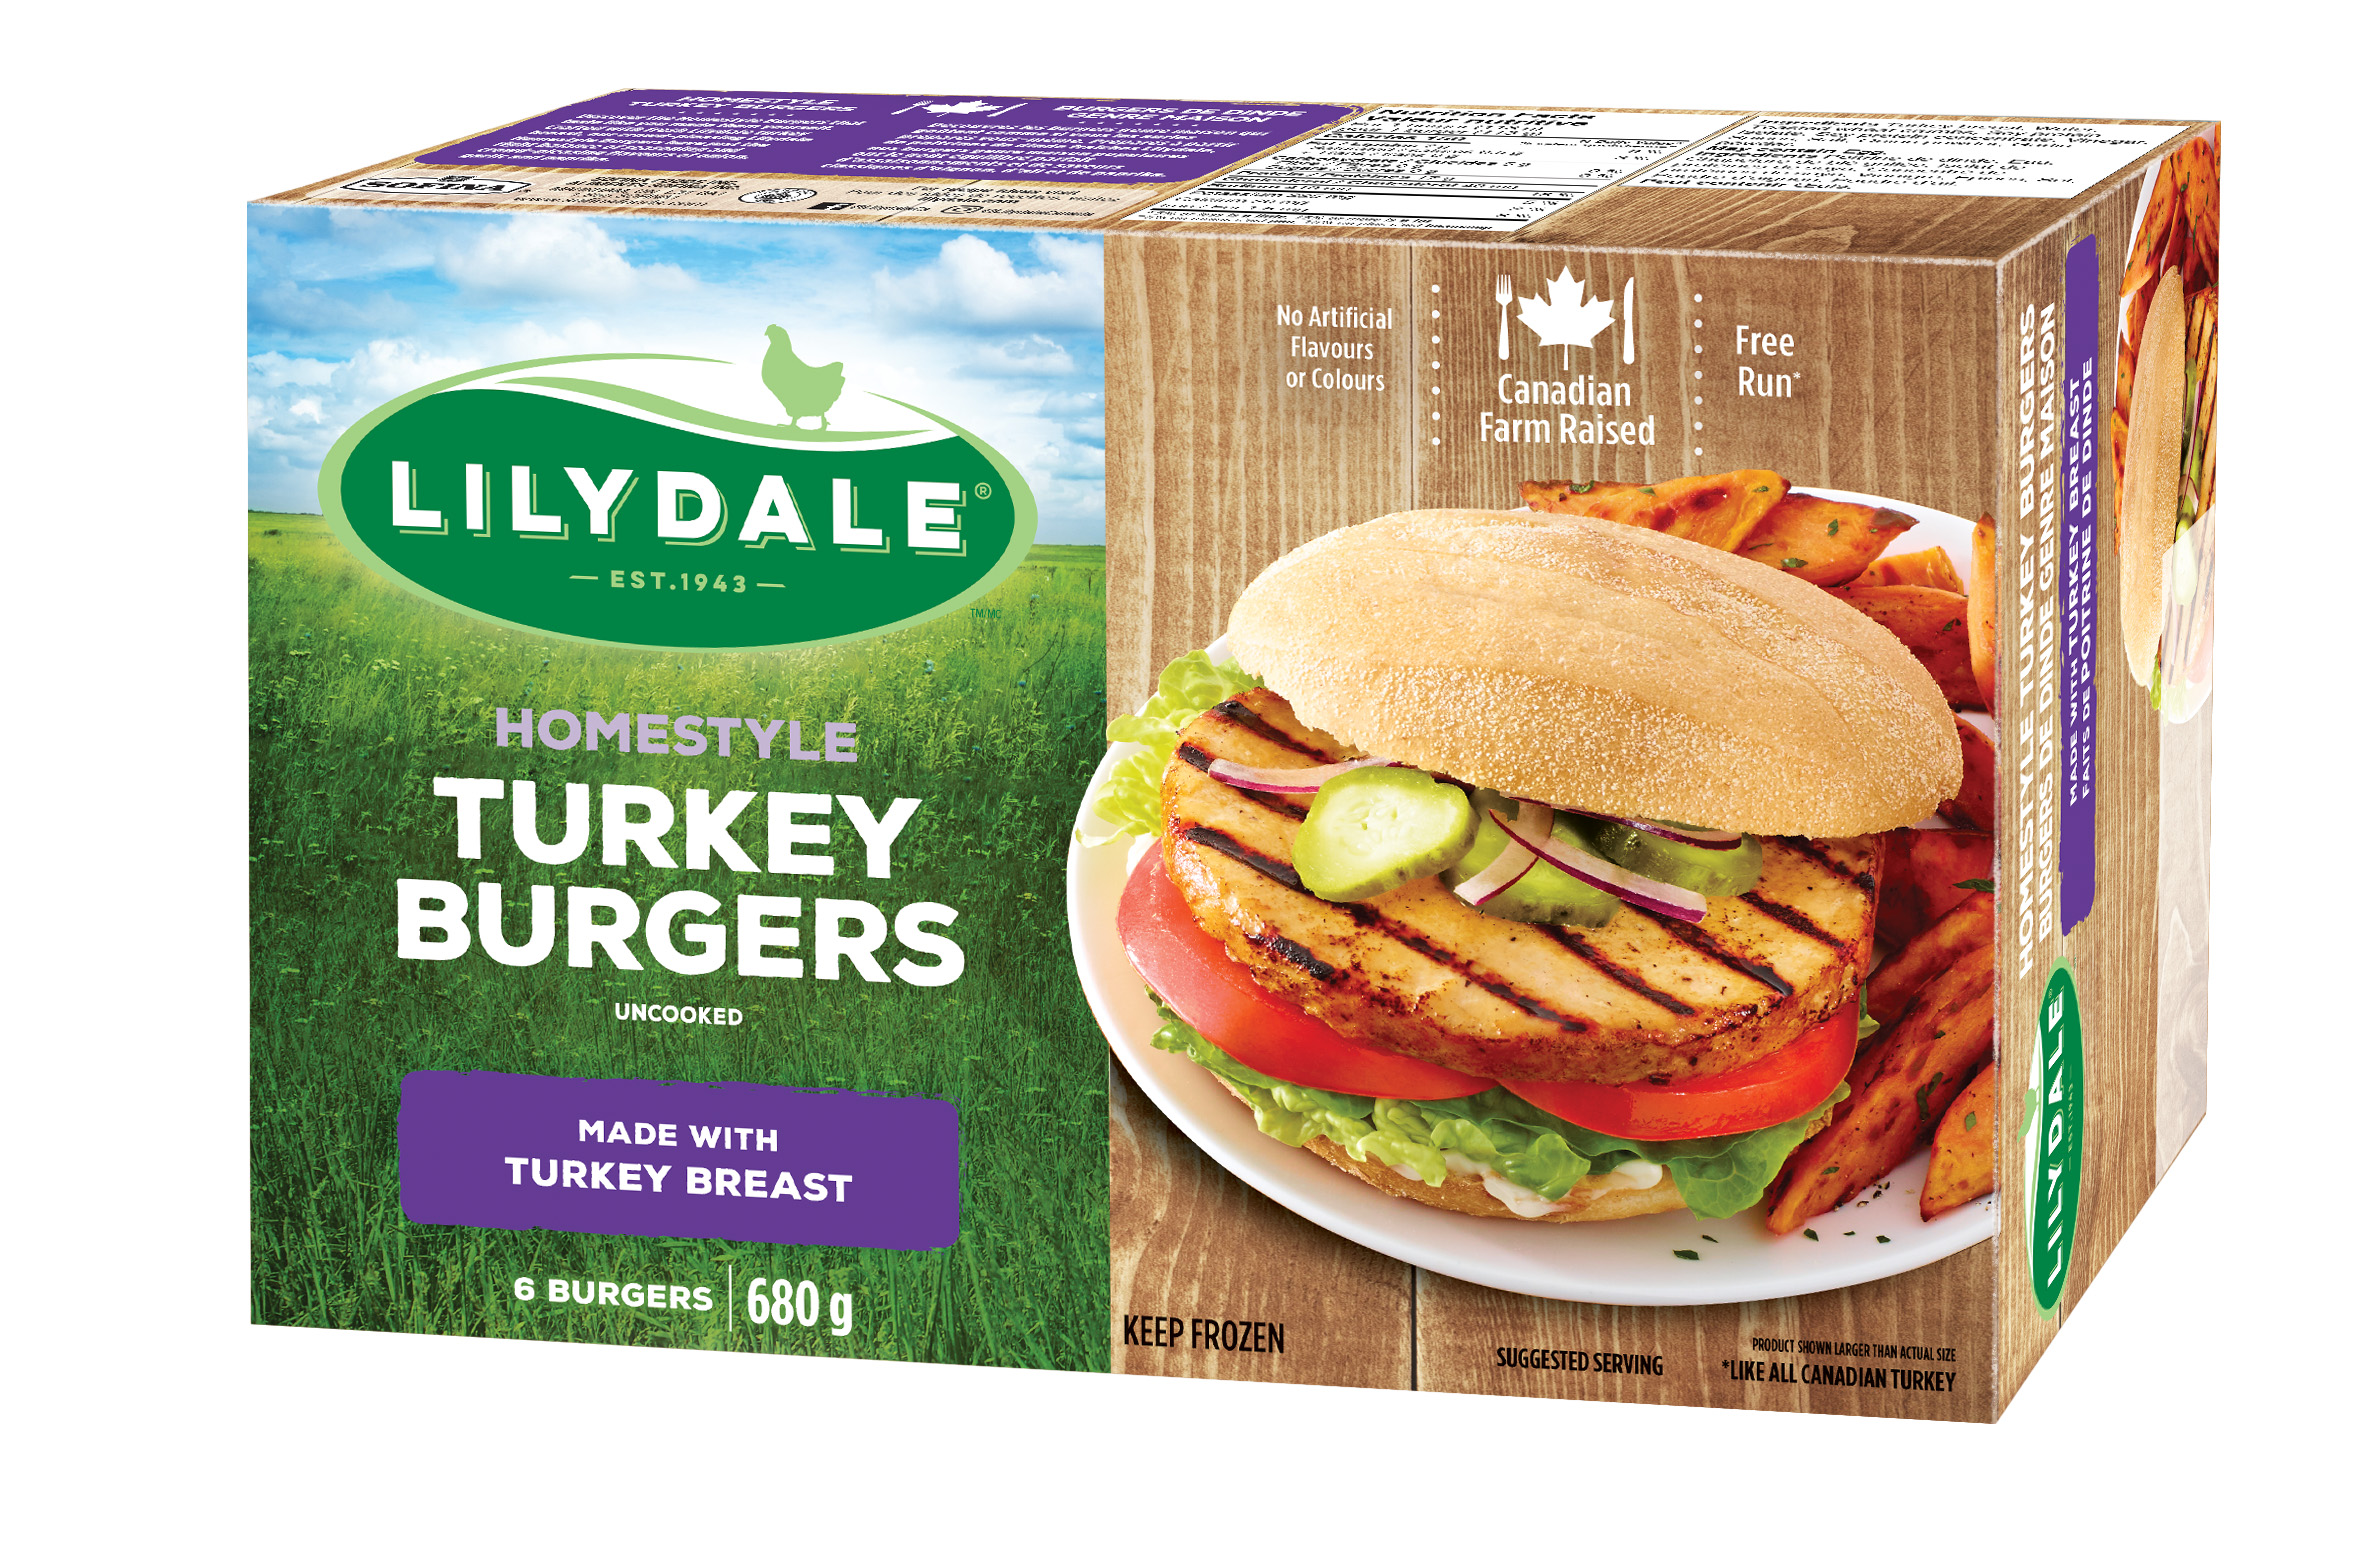 Homestyle Turkey Burgers